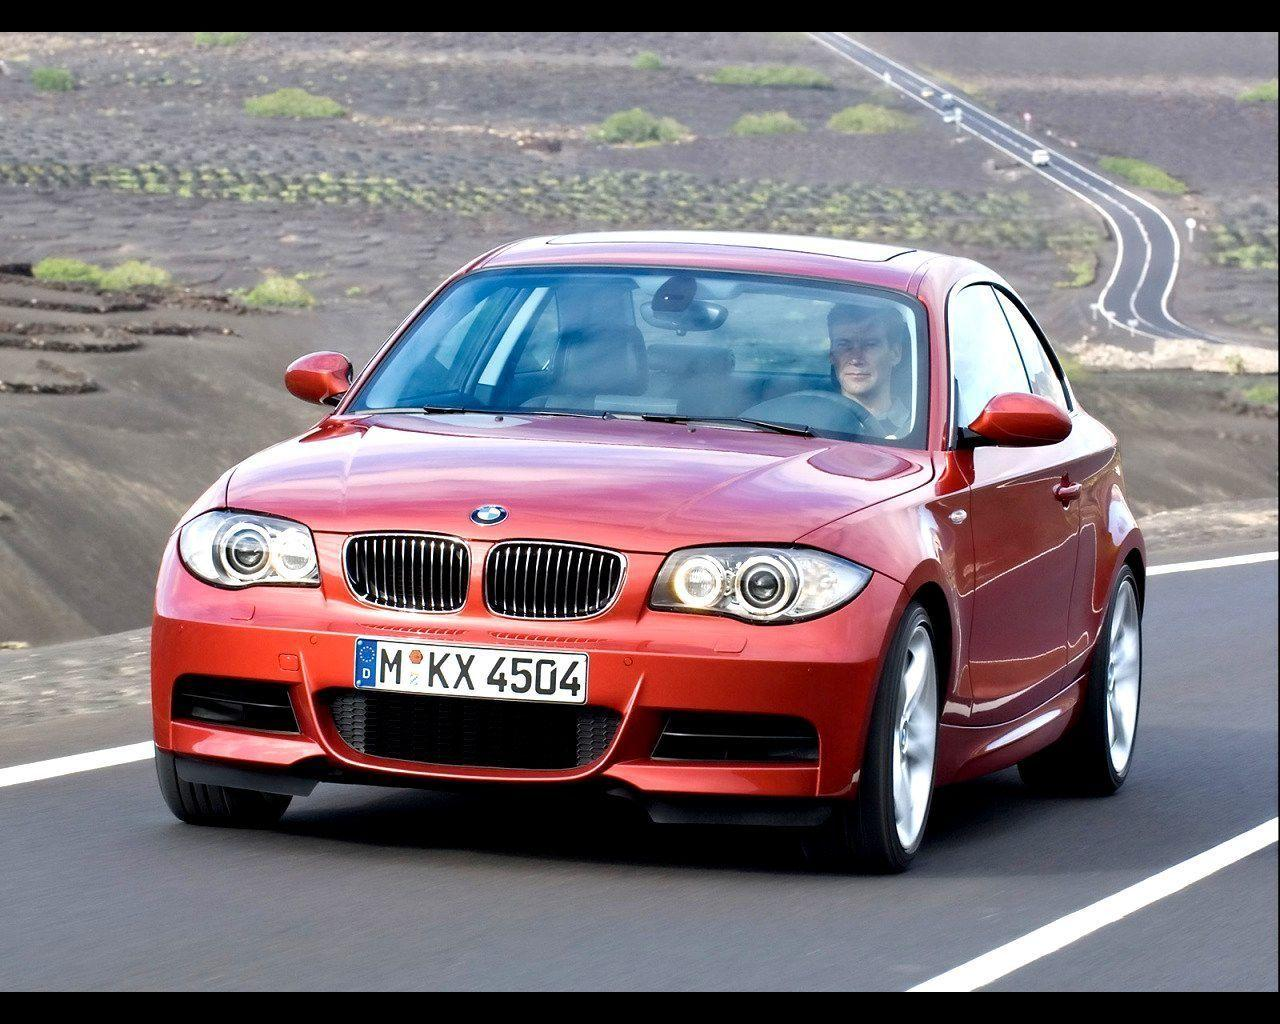 2008 BMW 1 Series Coupe Wallpaper 11 - 1280x1024